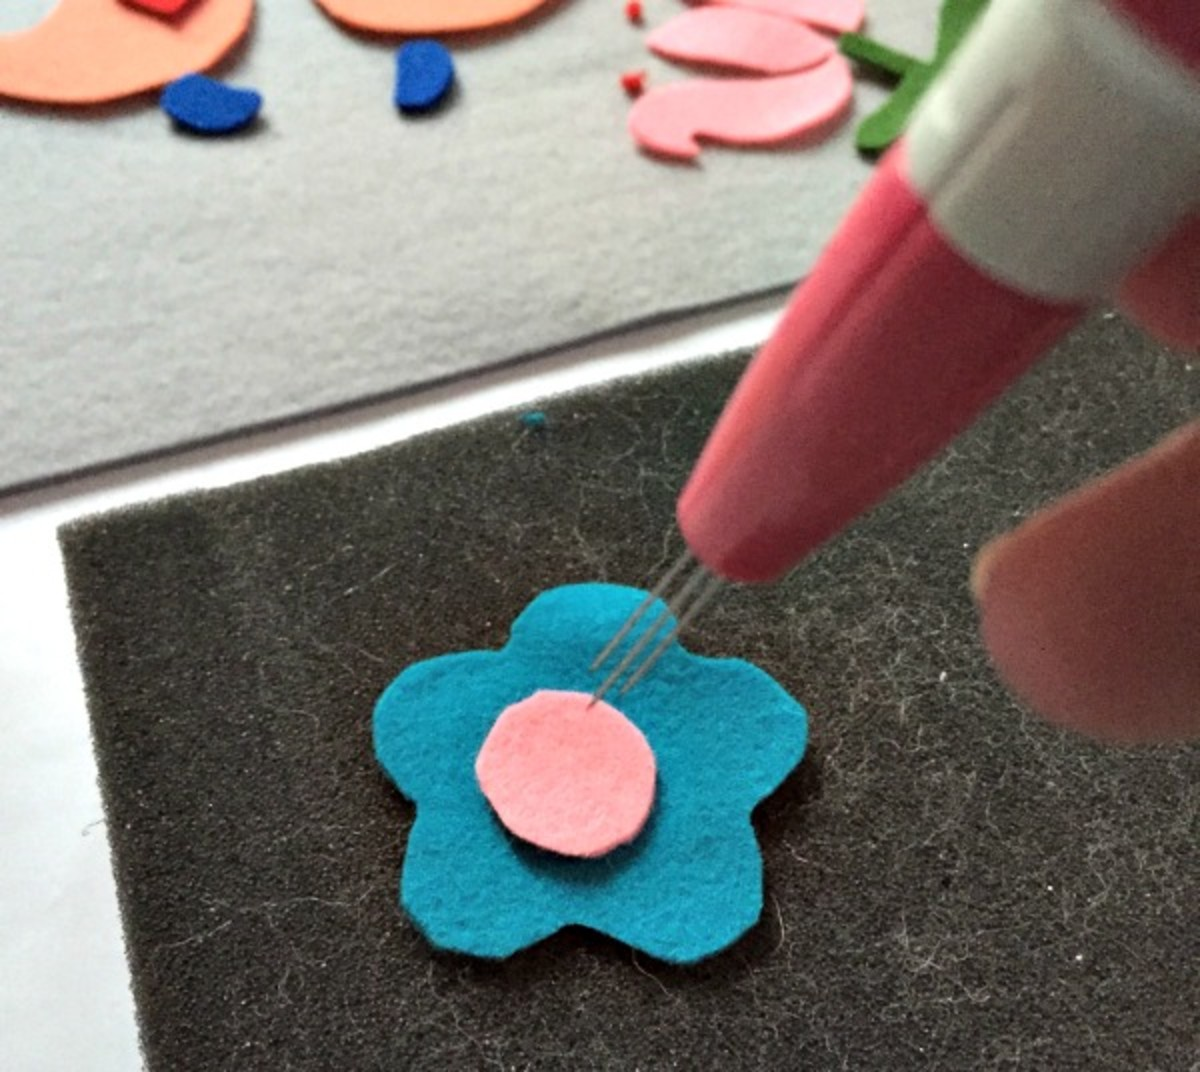 Use a felting needle to blend the pieces together